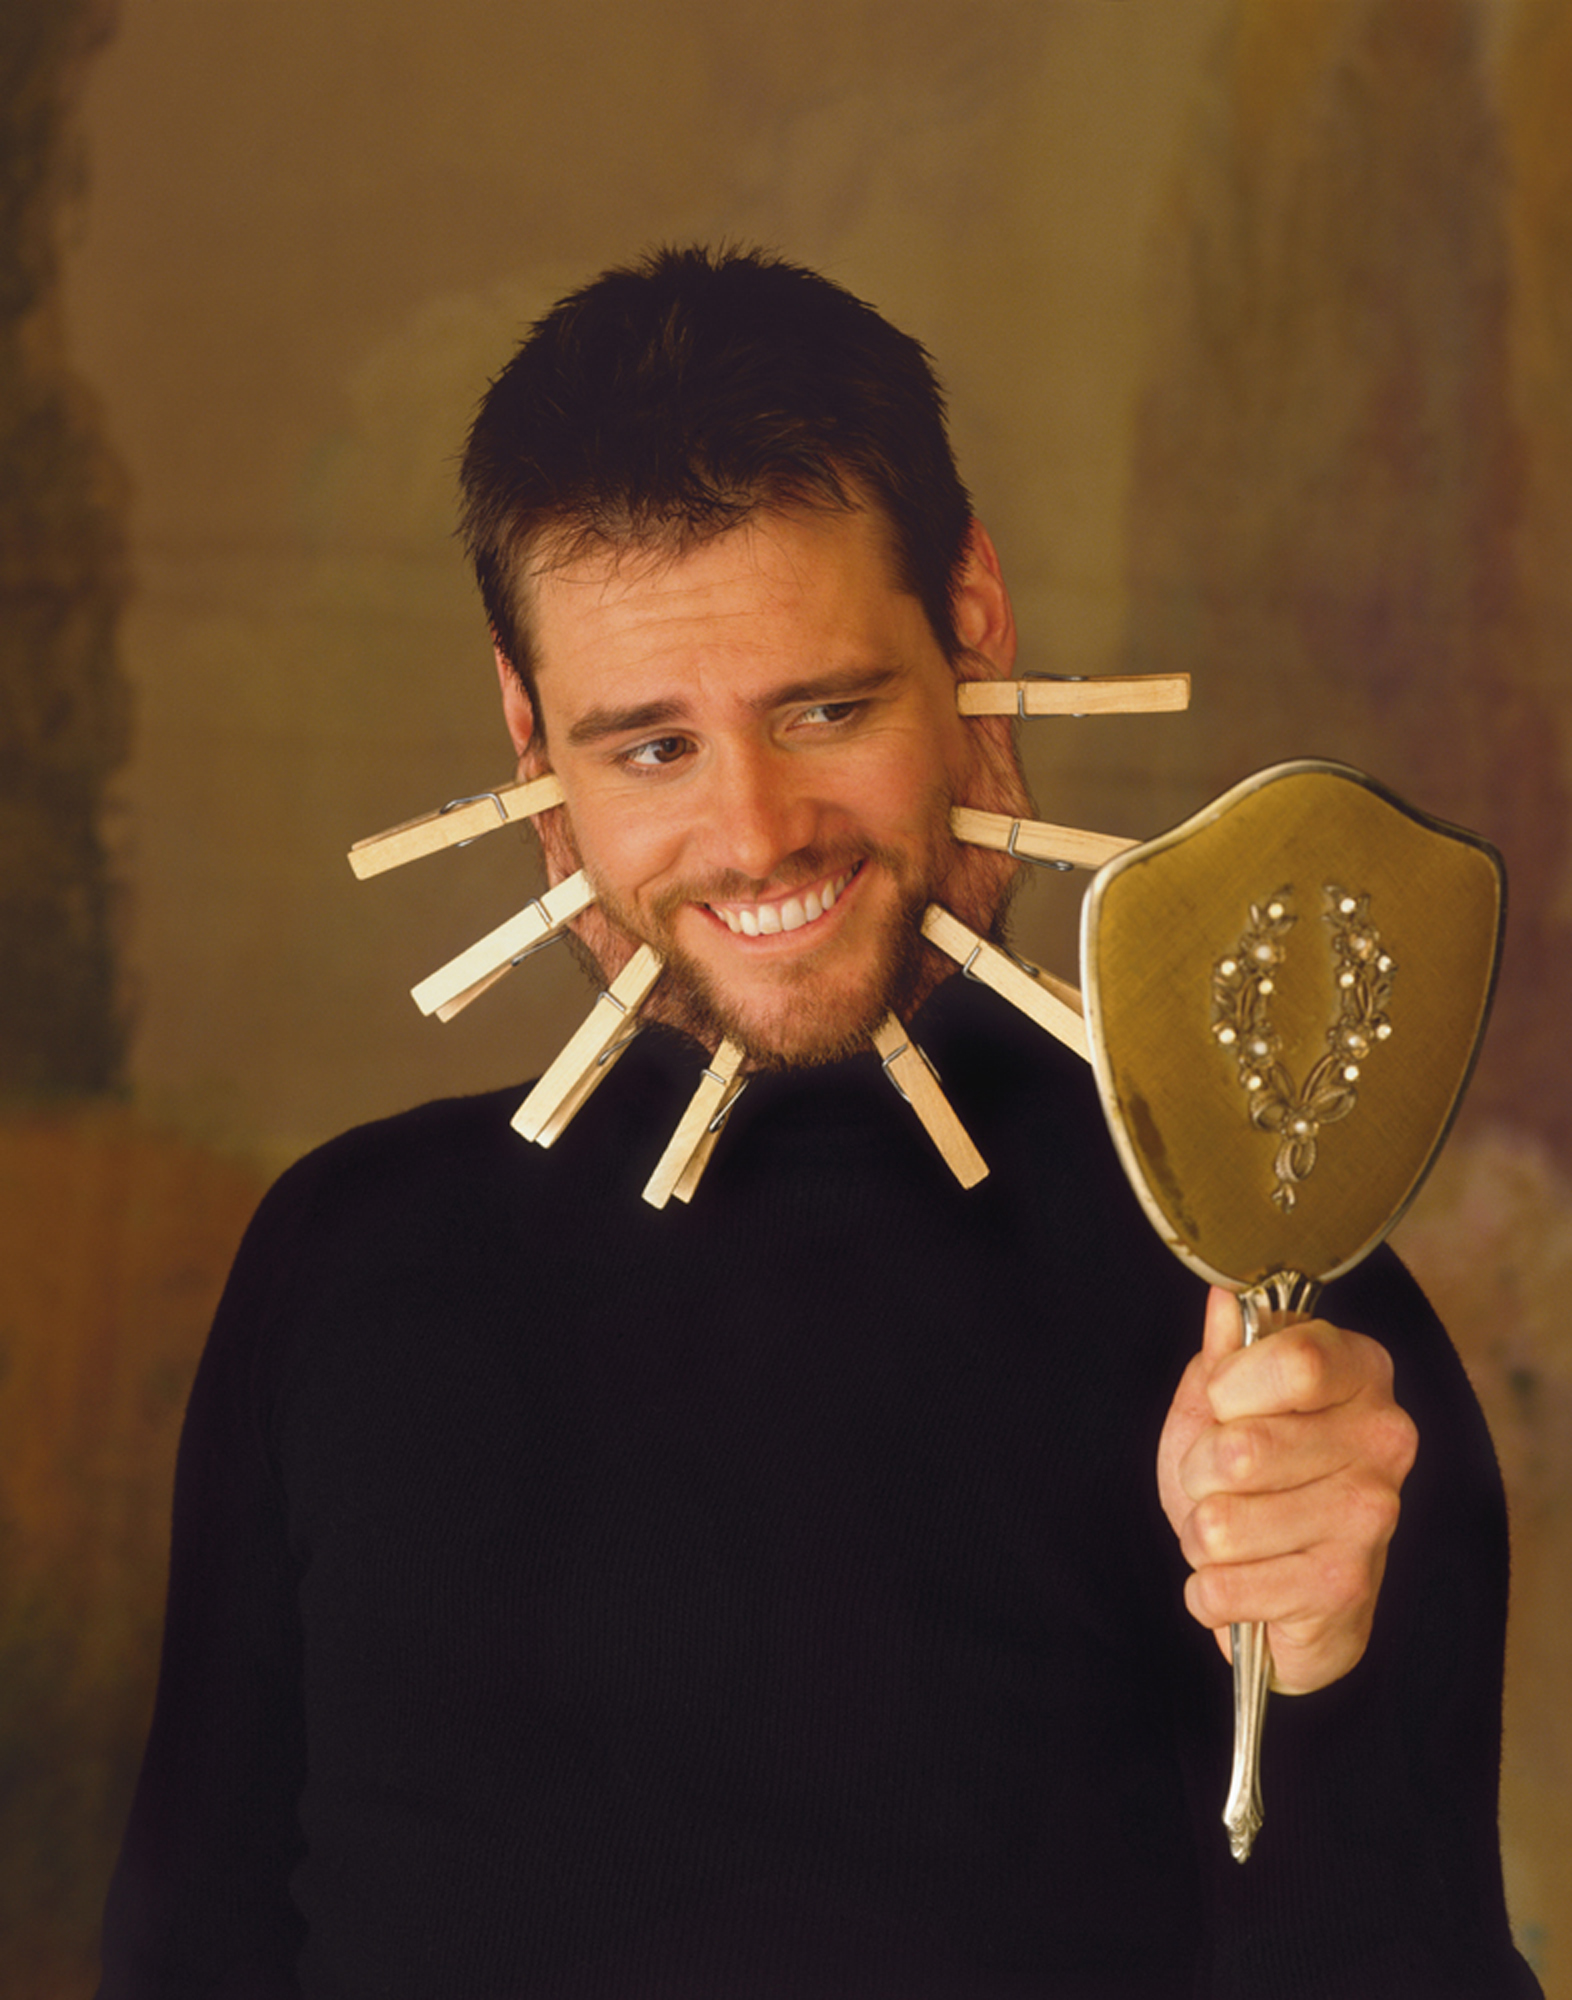 Jim Carrey With Cllothespins.jpg